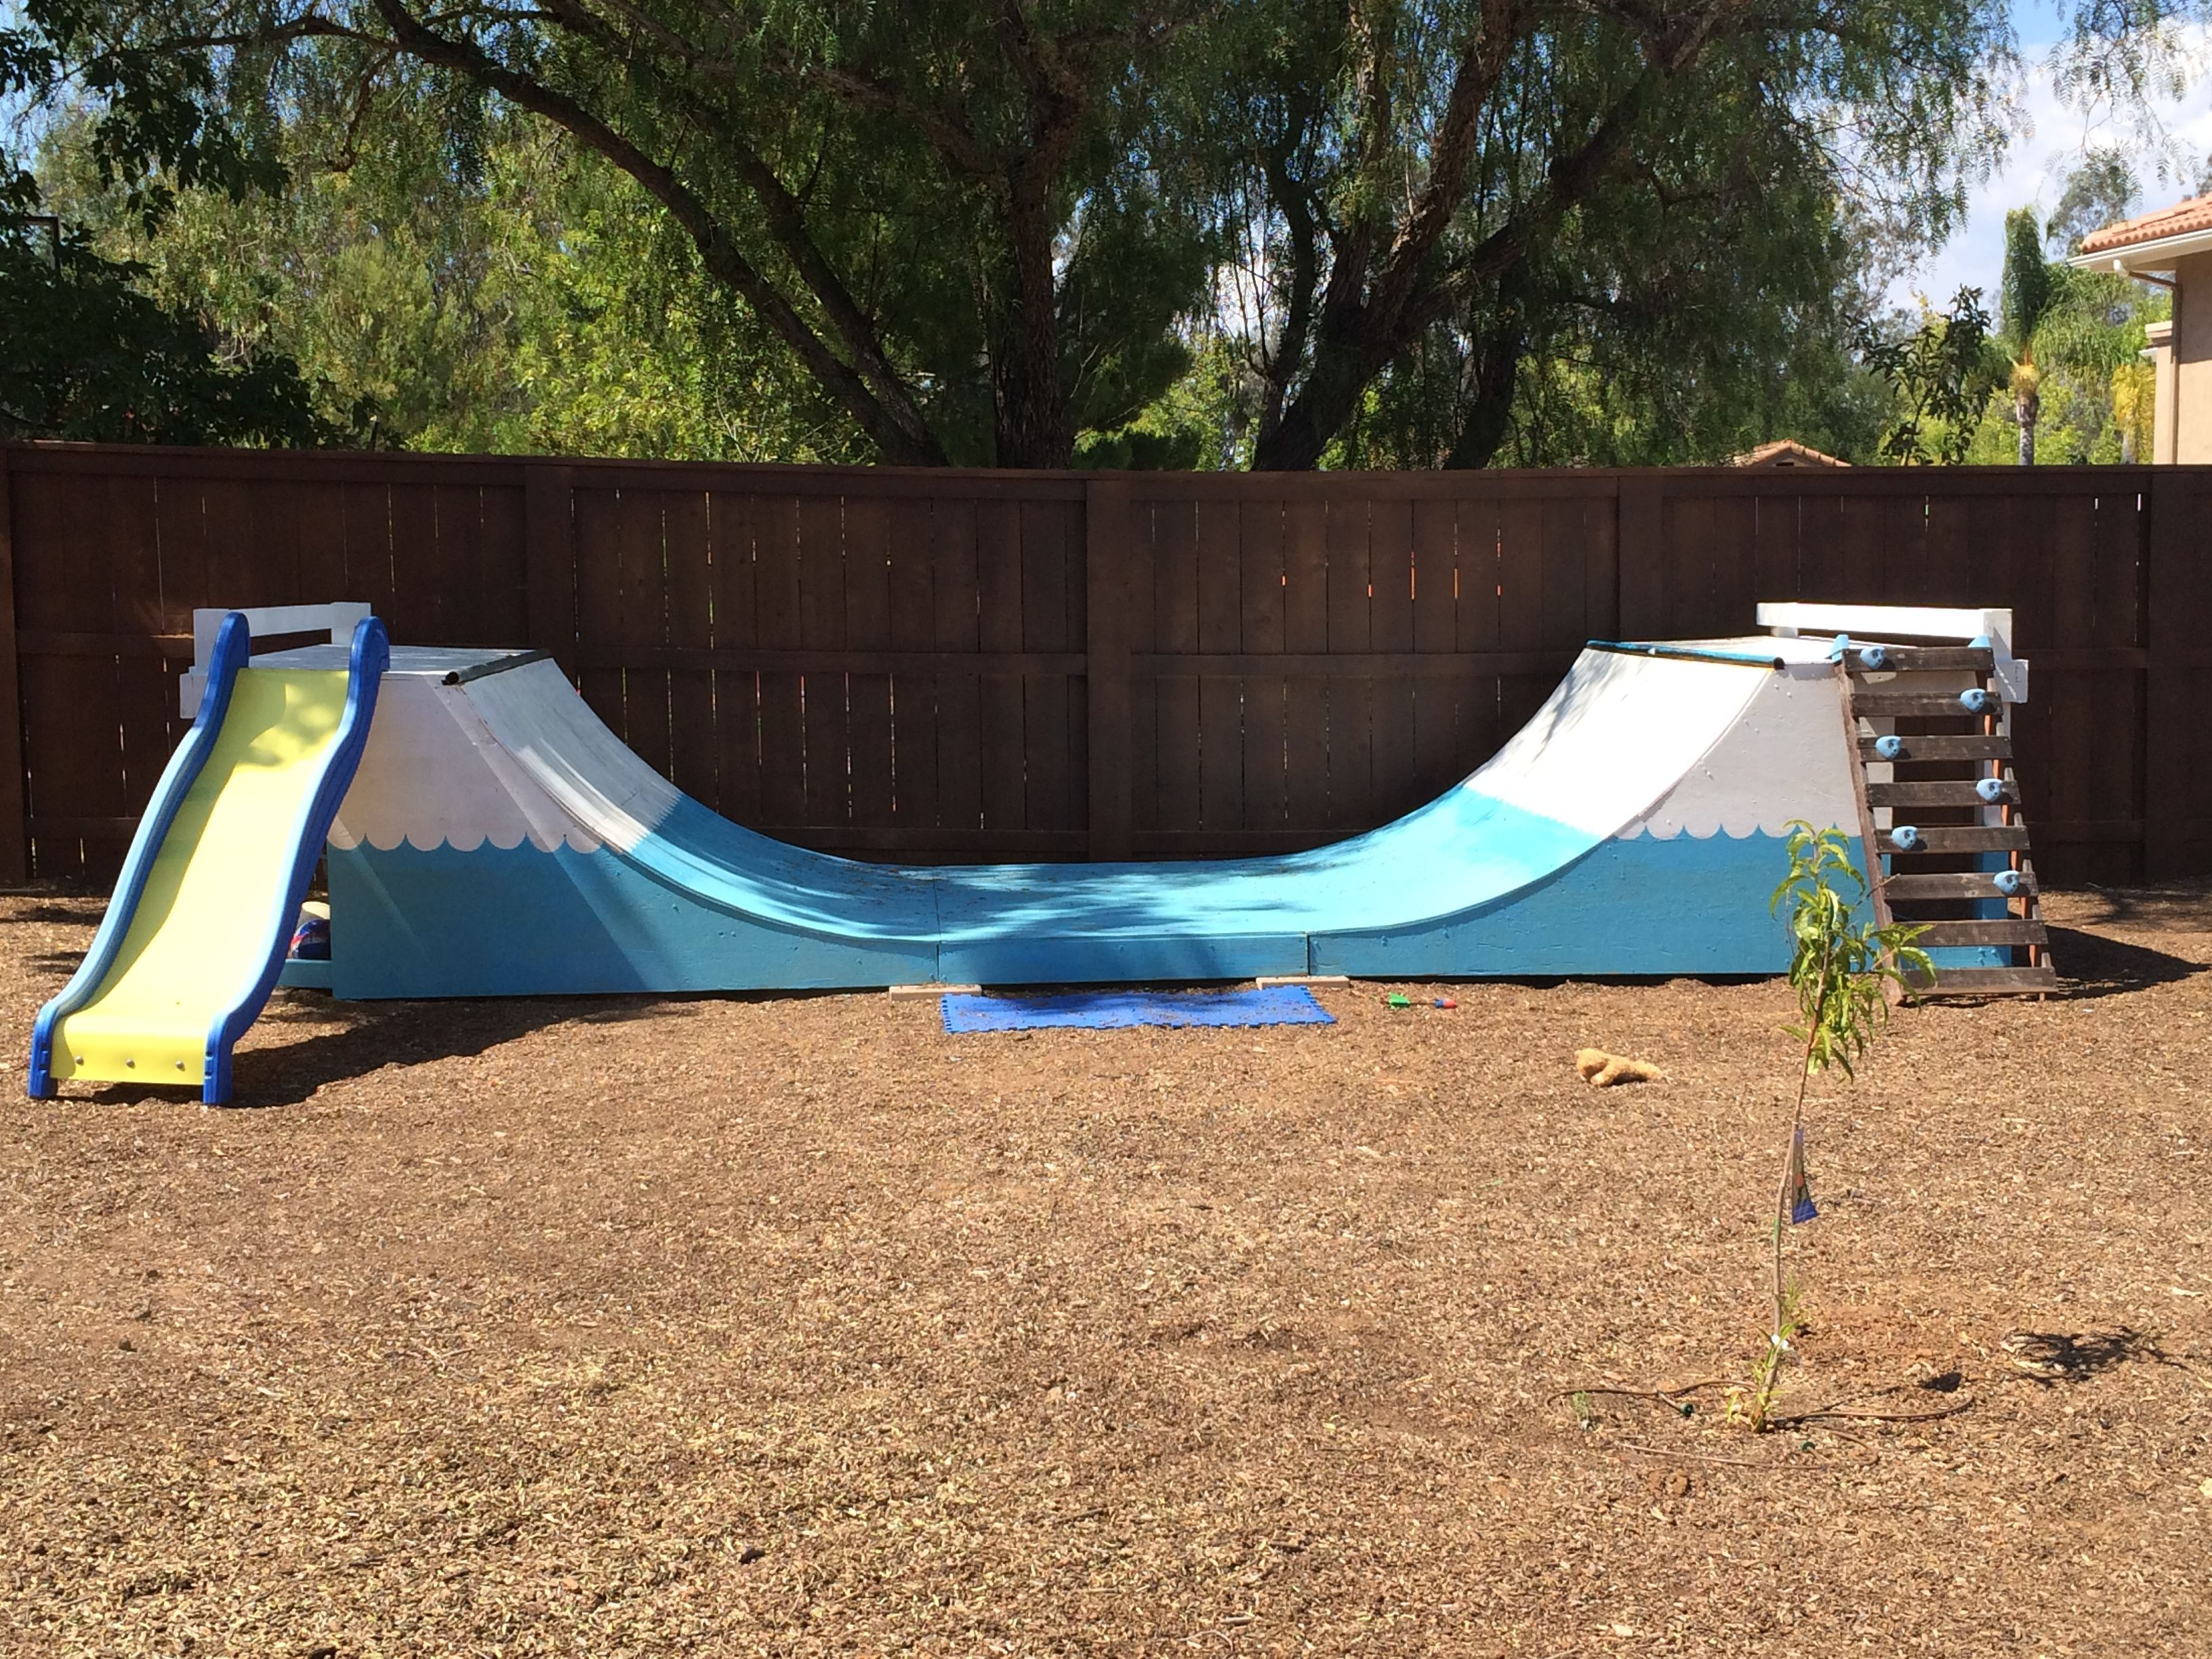 12 Some Of The Coolest Initiatives Of How To Makeover Backyard Landscape Ideas Di 2021 Backyard mini ramp plans